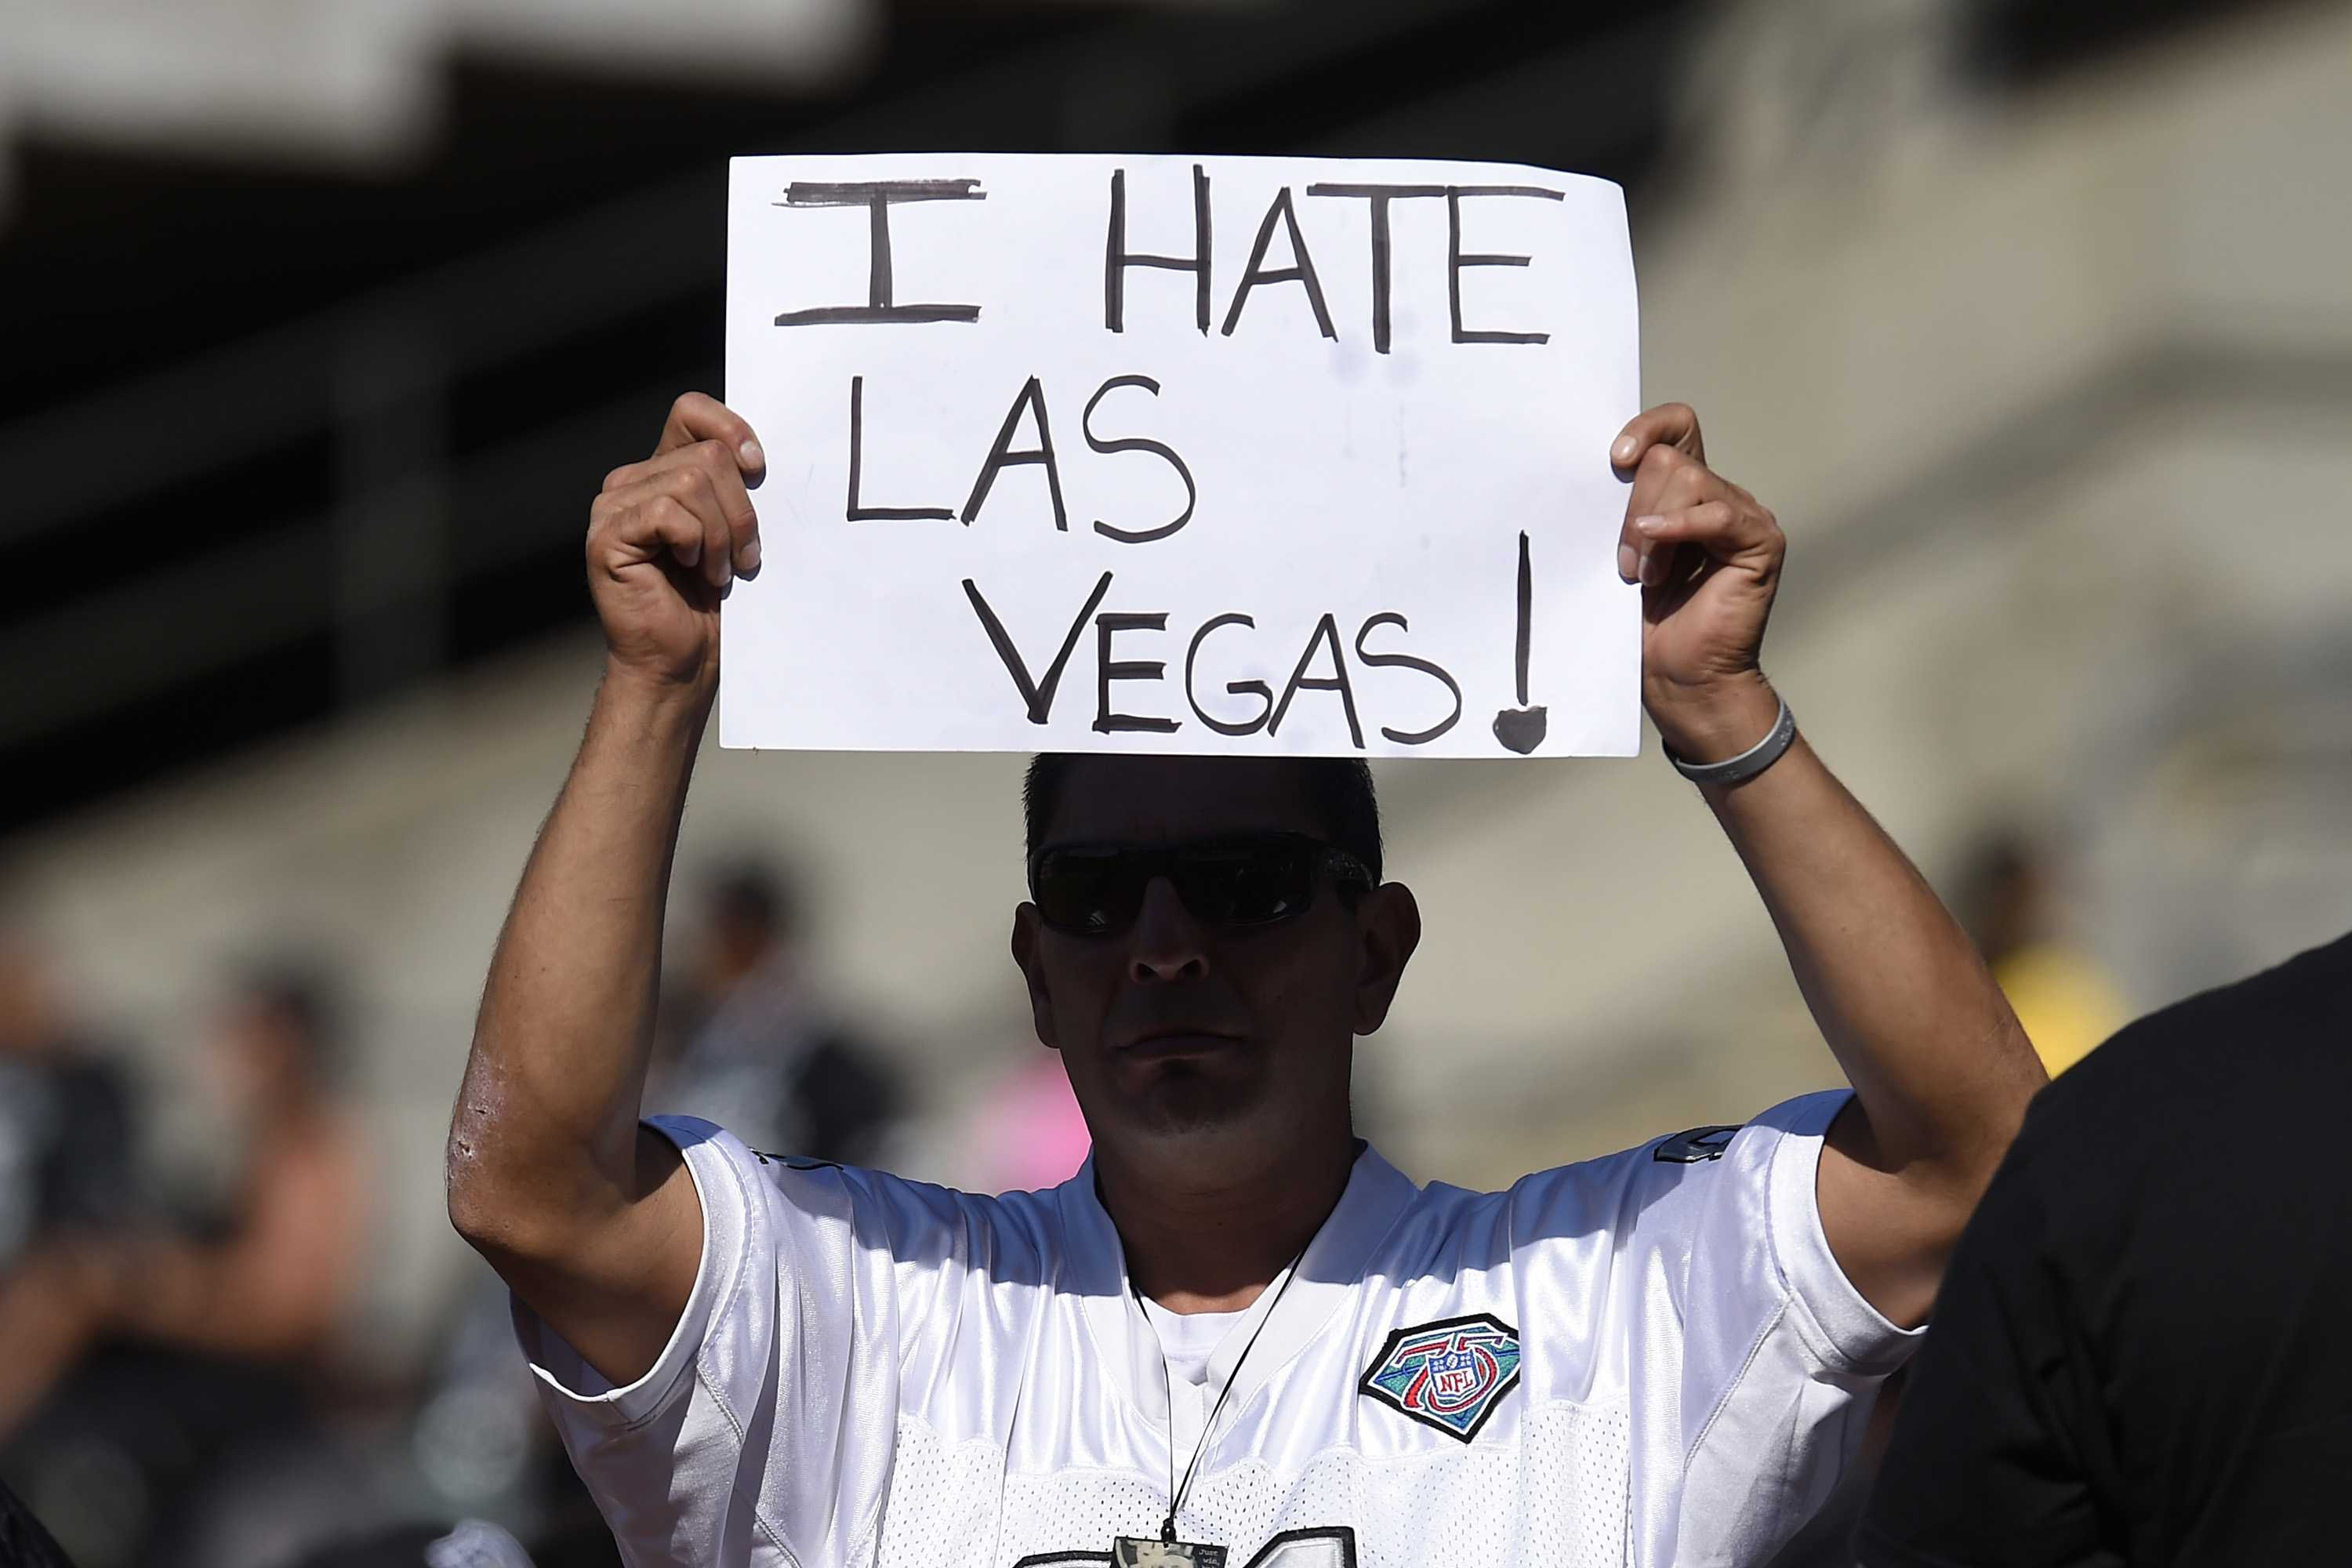 An Oakland Raiders fan shows his displeasure about the team possibly moving to Las Vegas during their preseason game against the Tennessee Titans at the Coliseum on Saturday, Aug. 27, 2016 in Oakland, Calif. (Jose Carlos Fajardo/Bay Area News Group/TNS)